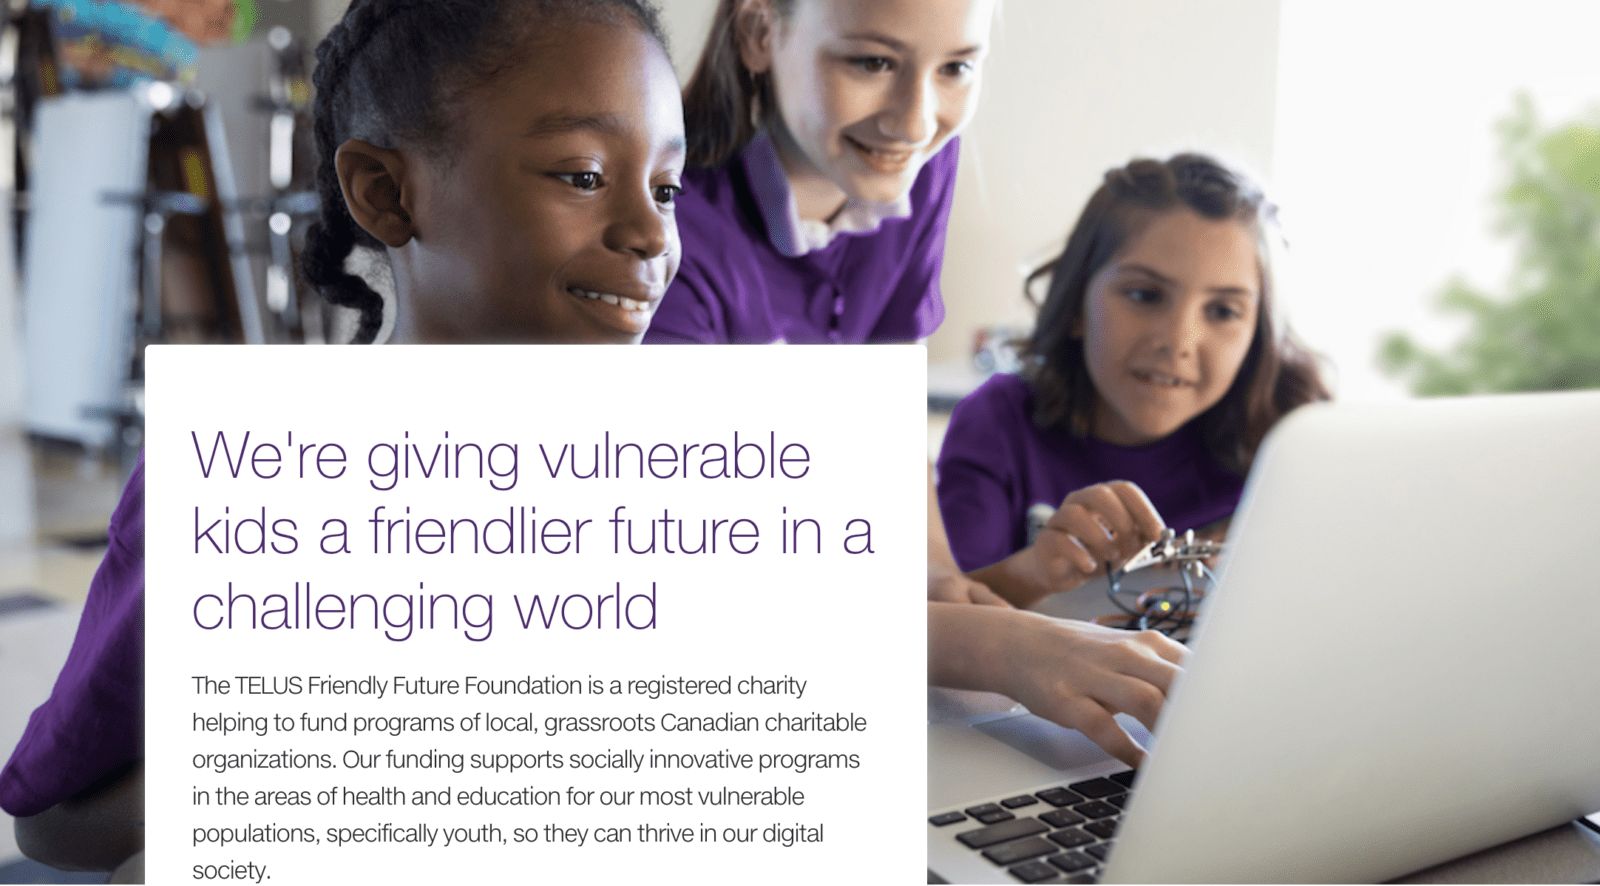 TELUS Friendly Future Foundation: Helping Youth & Communities Across Canada